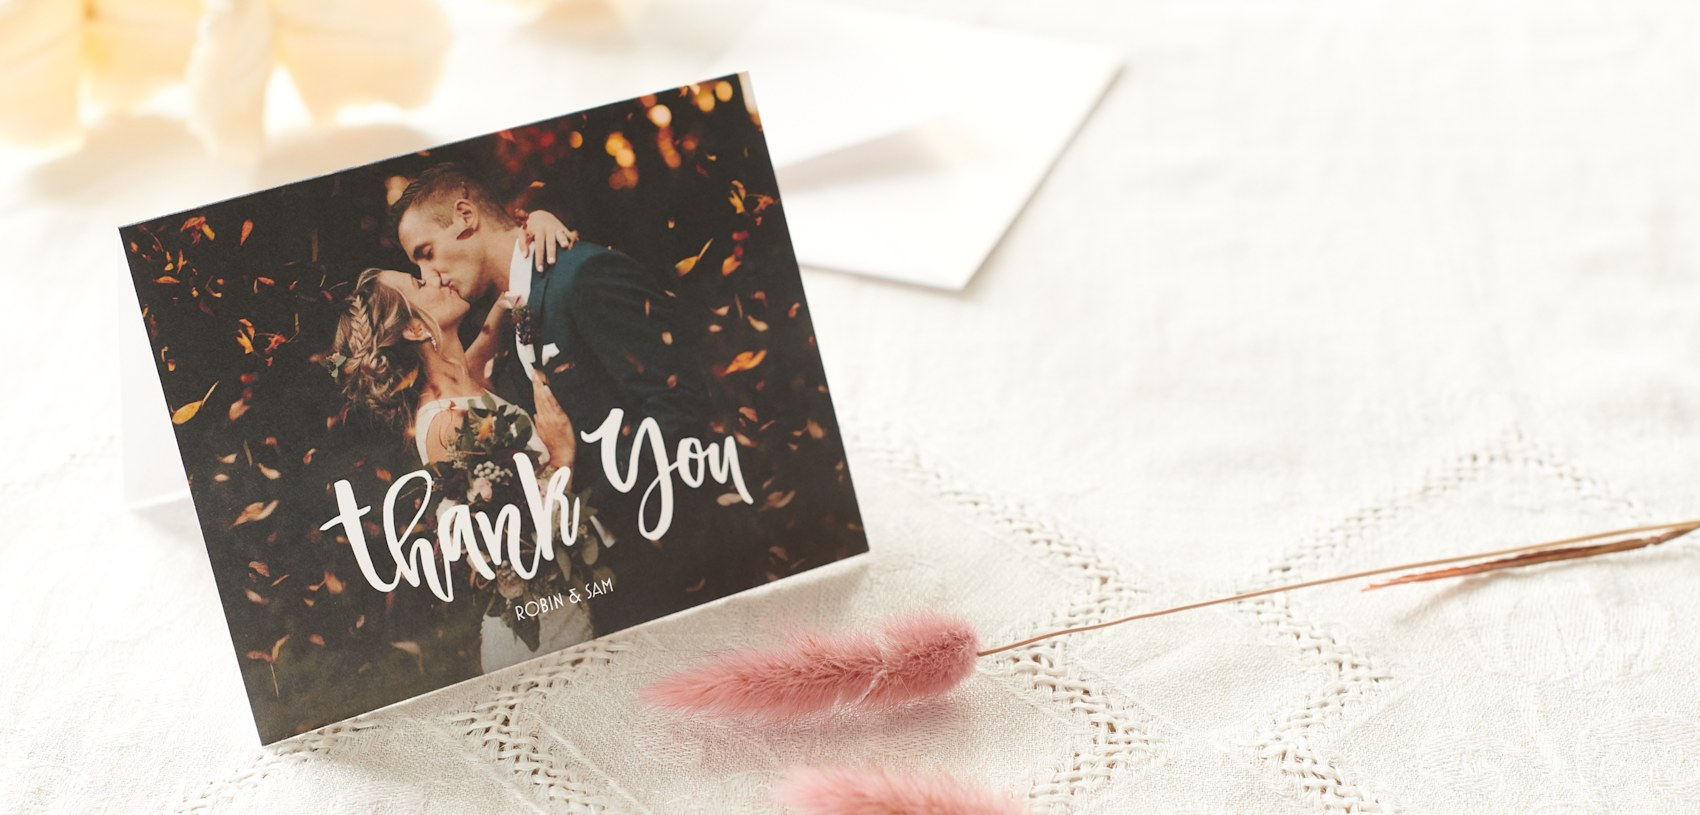 photo thank you card with bride and groom wedding photo